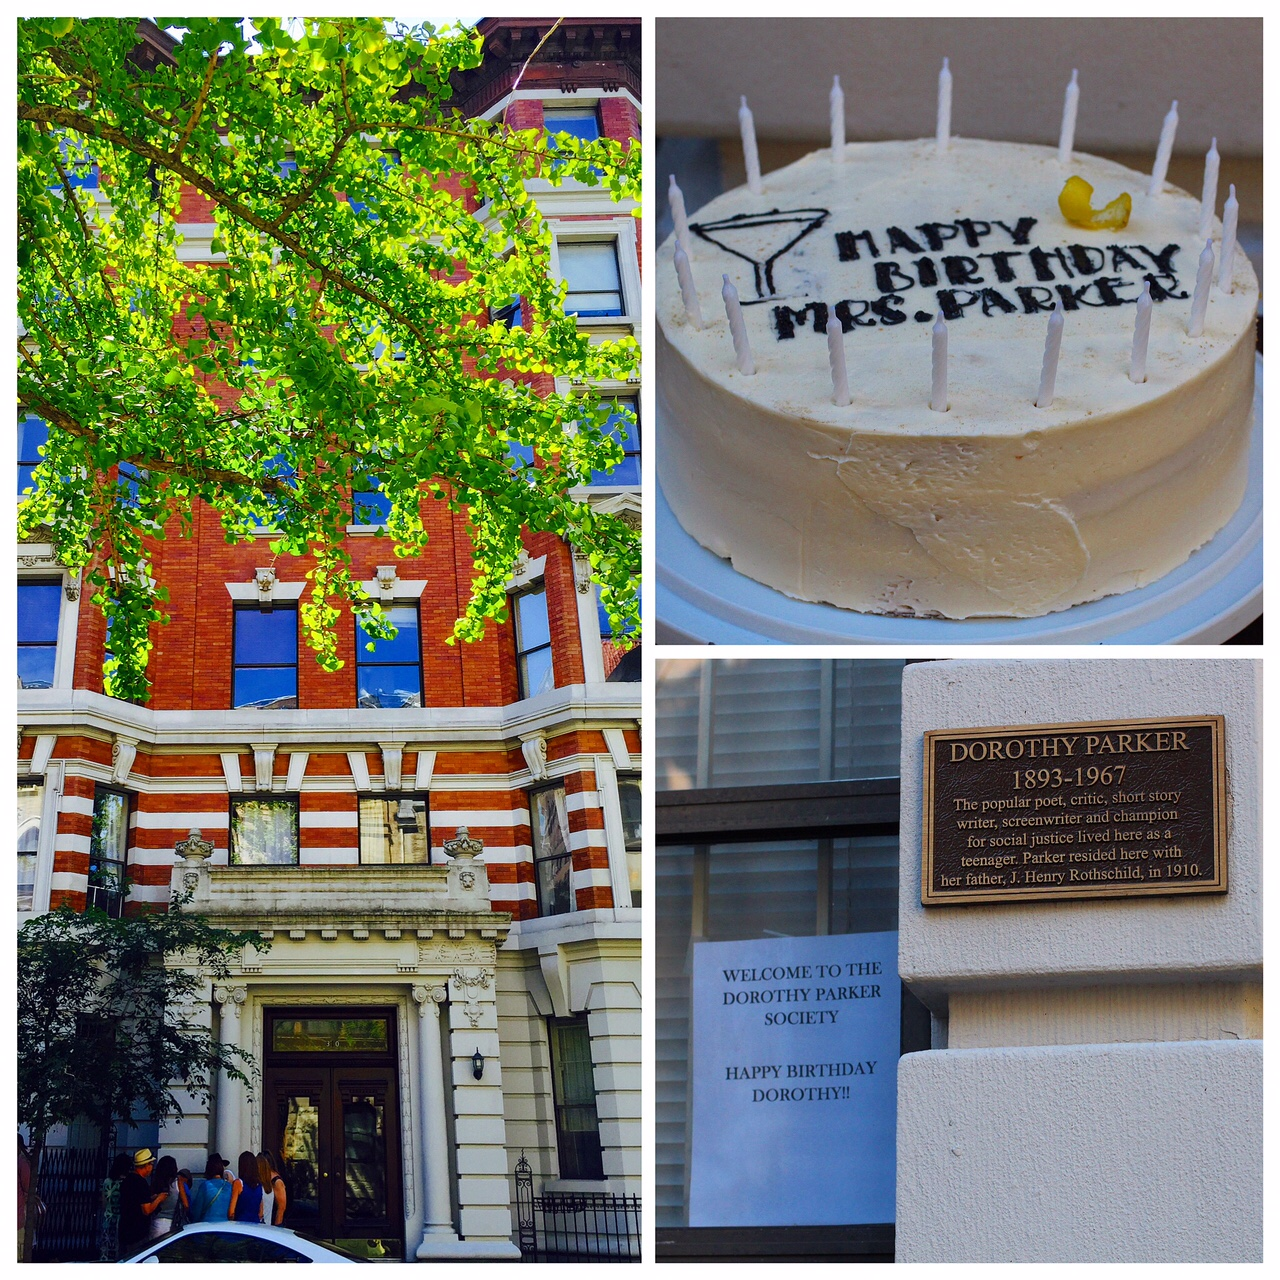 To Celebrate Her Birthday I Went On A Walking Tour Of Upper West Side Haunts Led By Kevin Fitzpatrick Author Multiple Books Mrs Parker And The